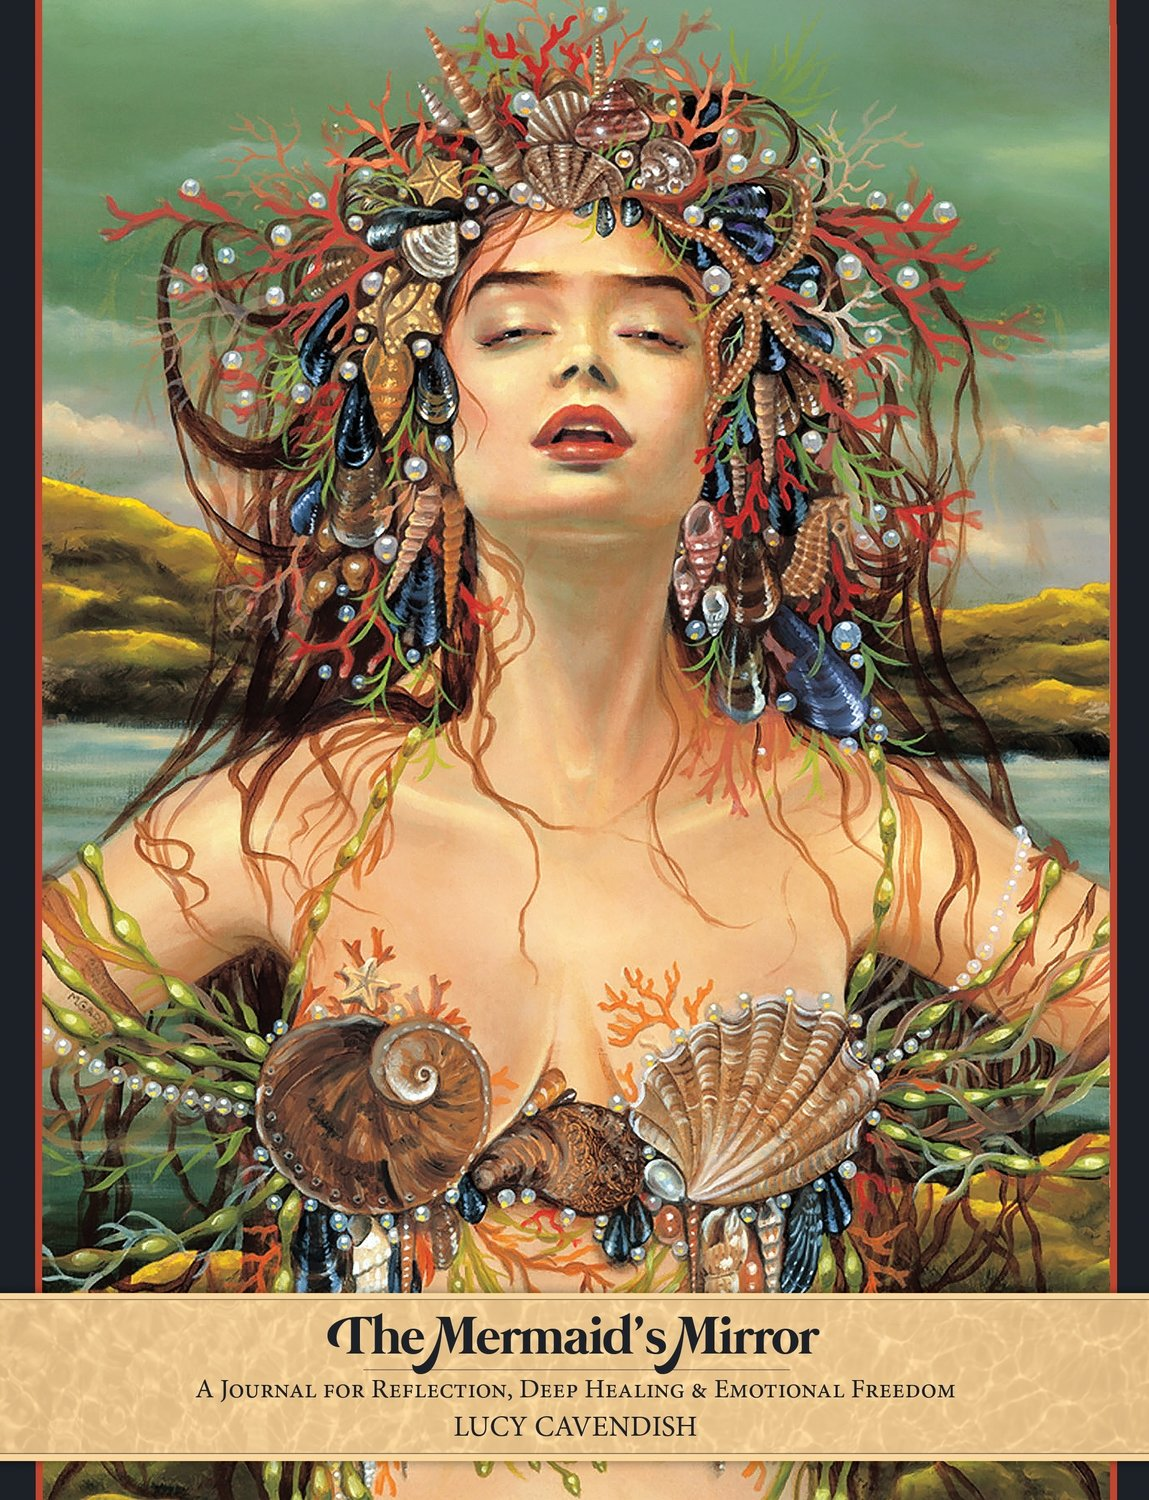 The Mermaid's Mirror: A Journal for Reflection, Deep Healing and Emotional Freedom